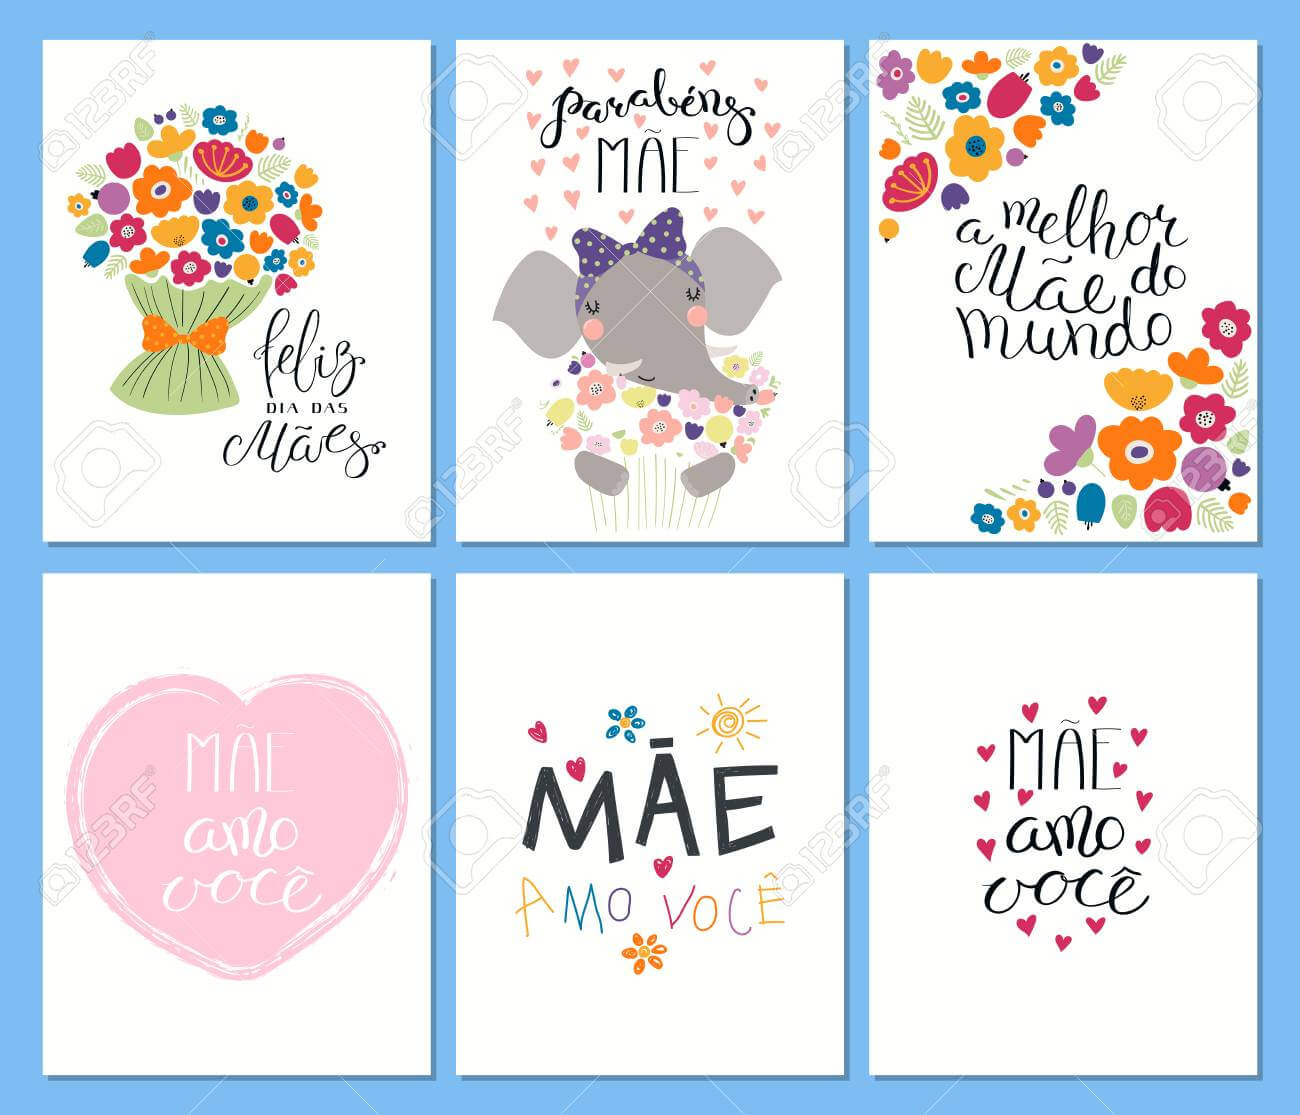 Set Of Mother's Day Cards Templates With Quotes In Portuguese intended for Mothers Day Card Templates